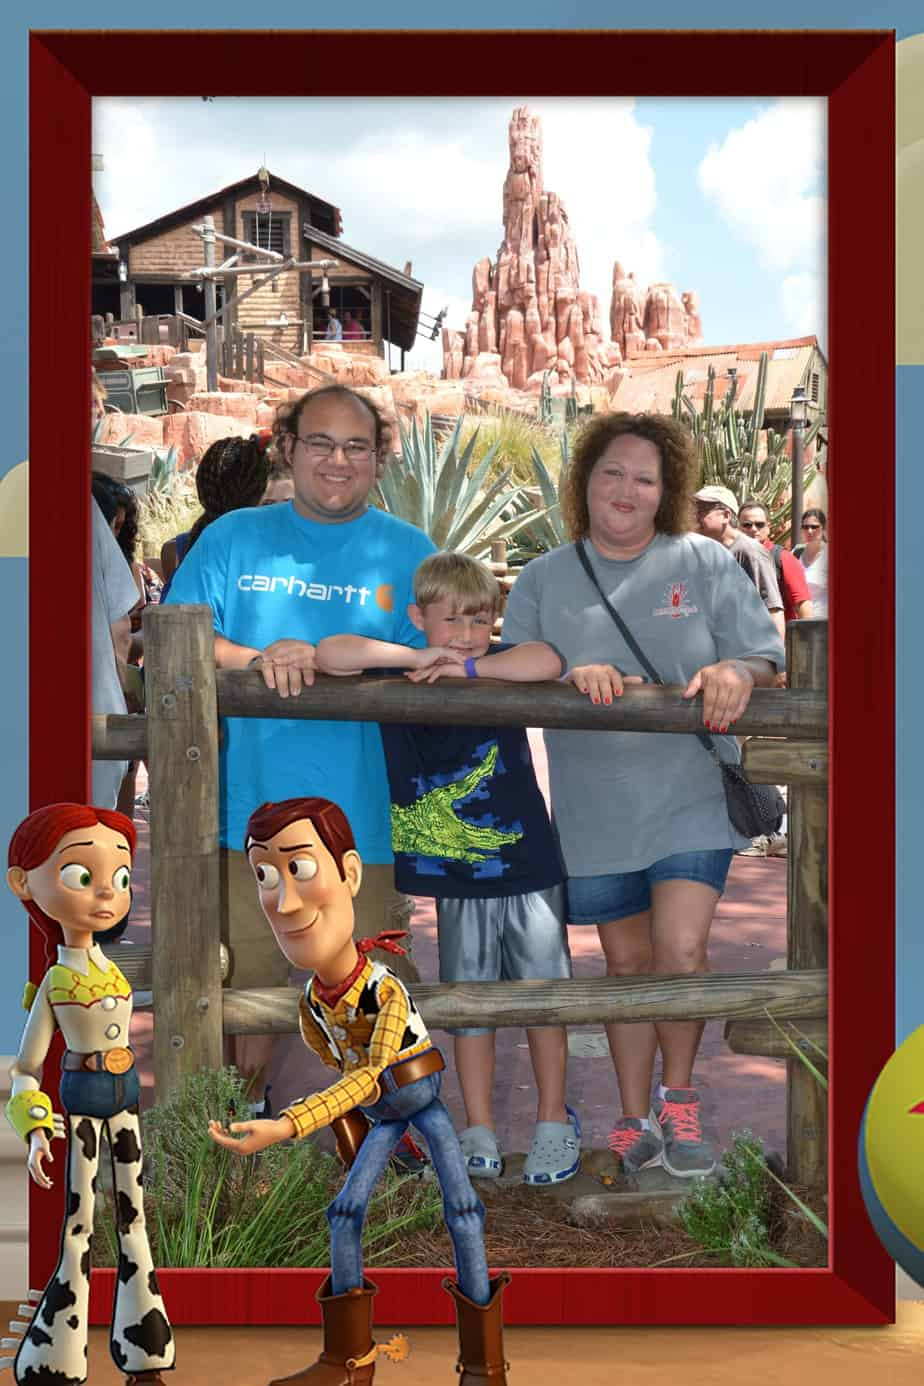 Disney 101: PhotoPass and Memory Maker